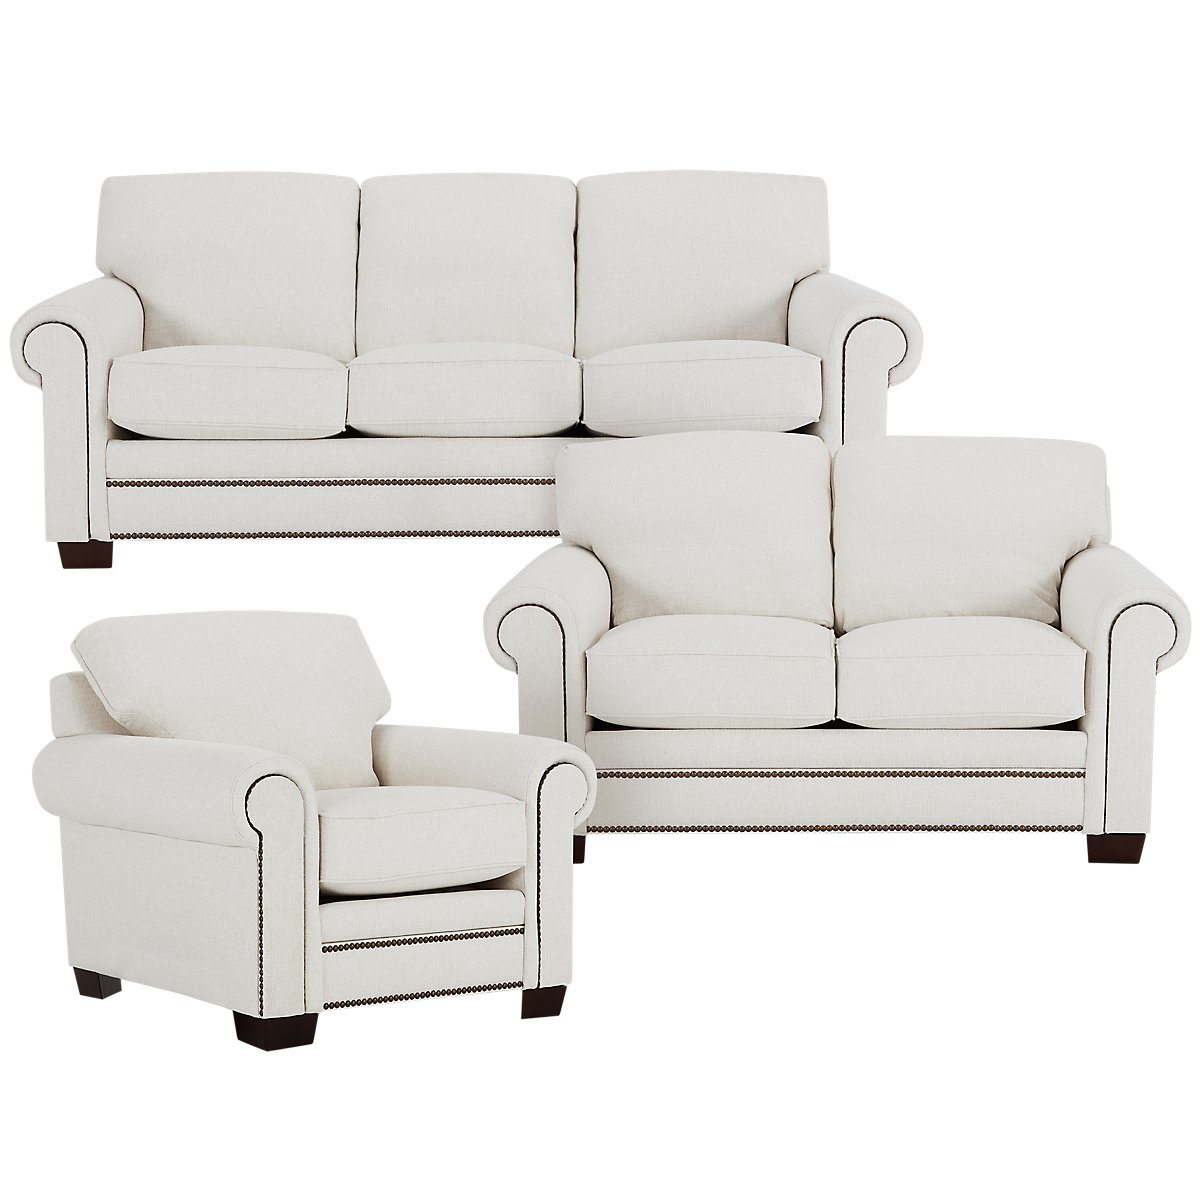 City Furniture Foster White Fabric Living Room